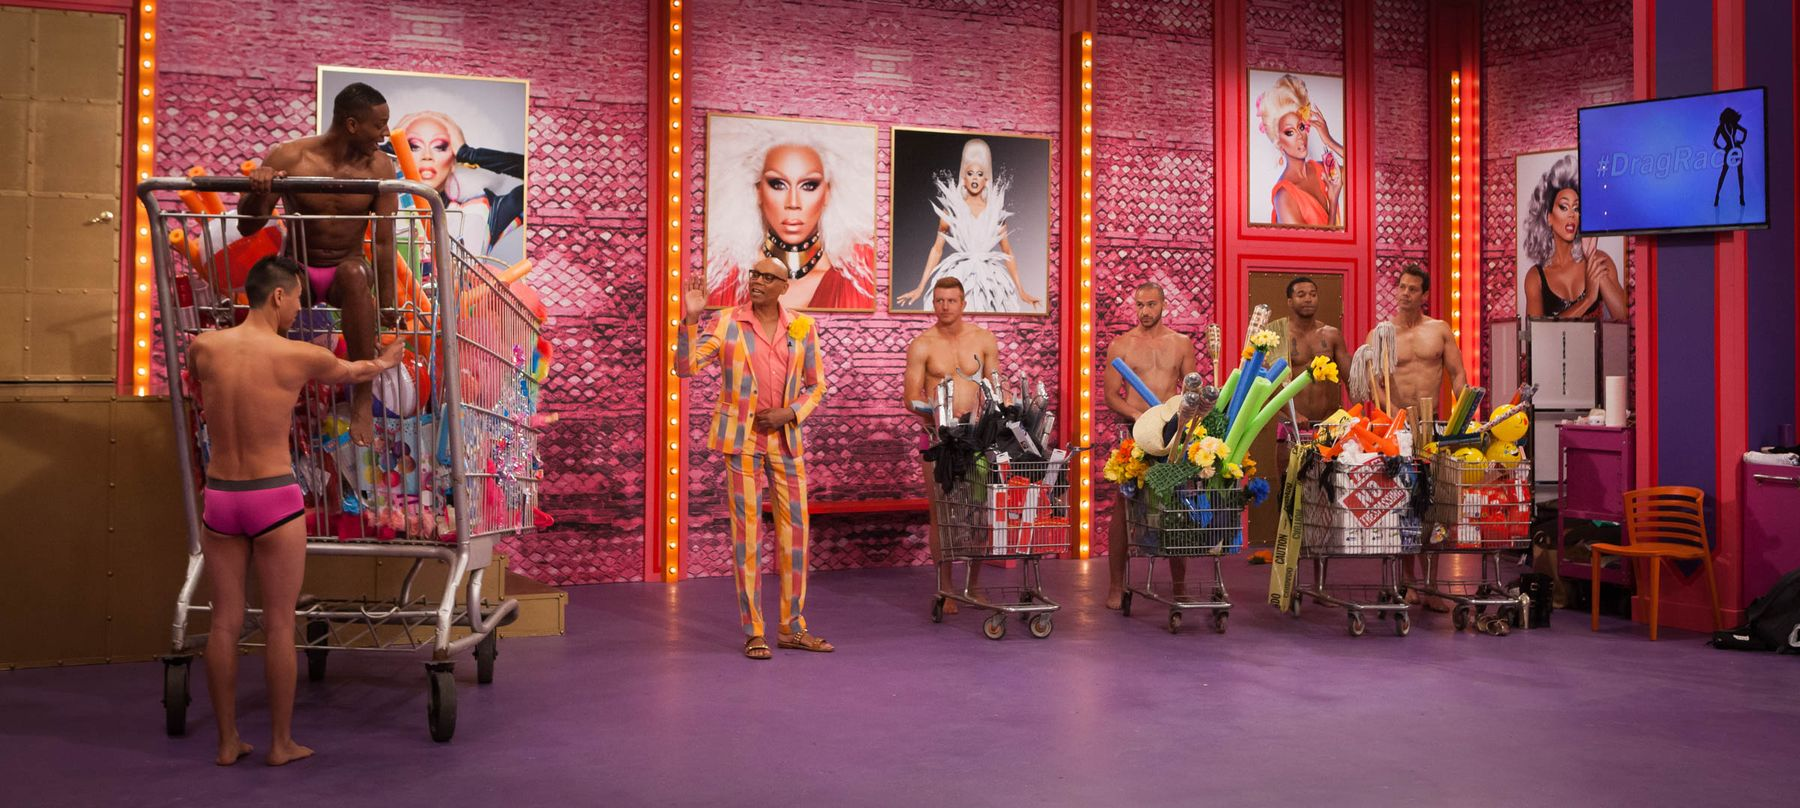 RuPaul's Drag Race Season 10 Work Room